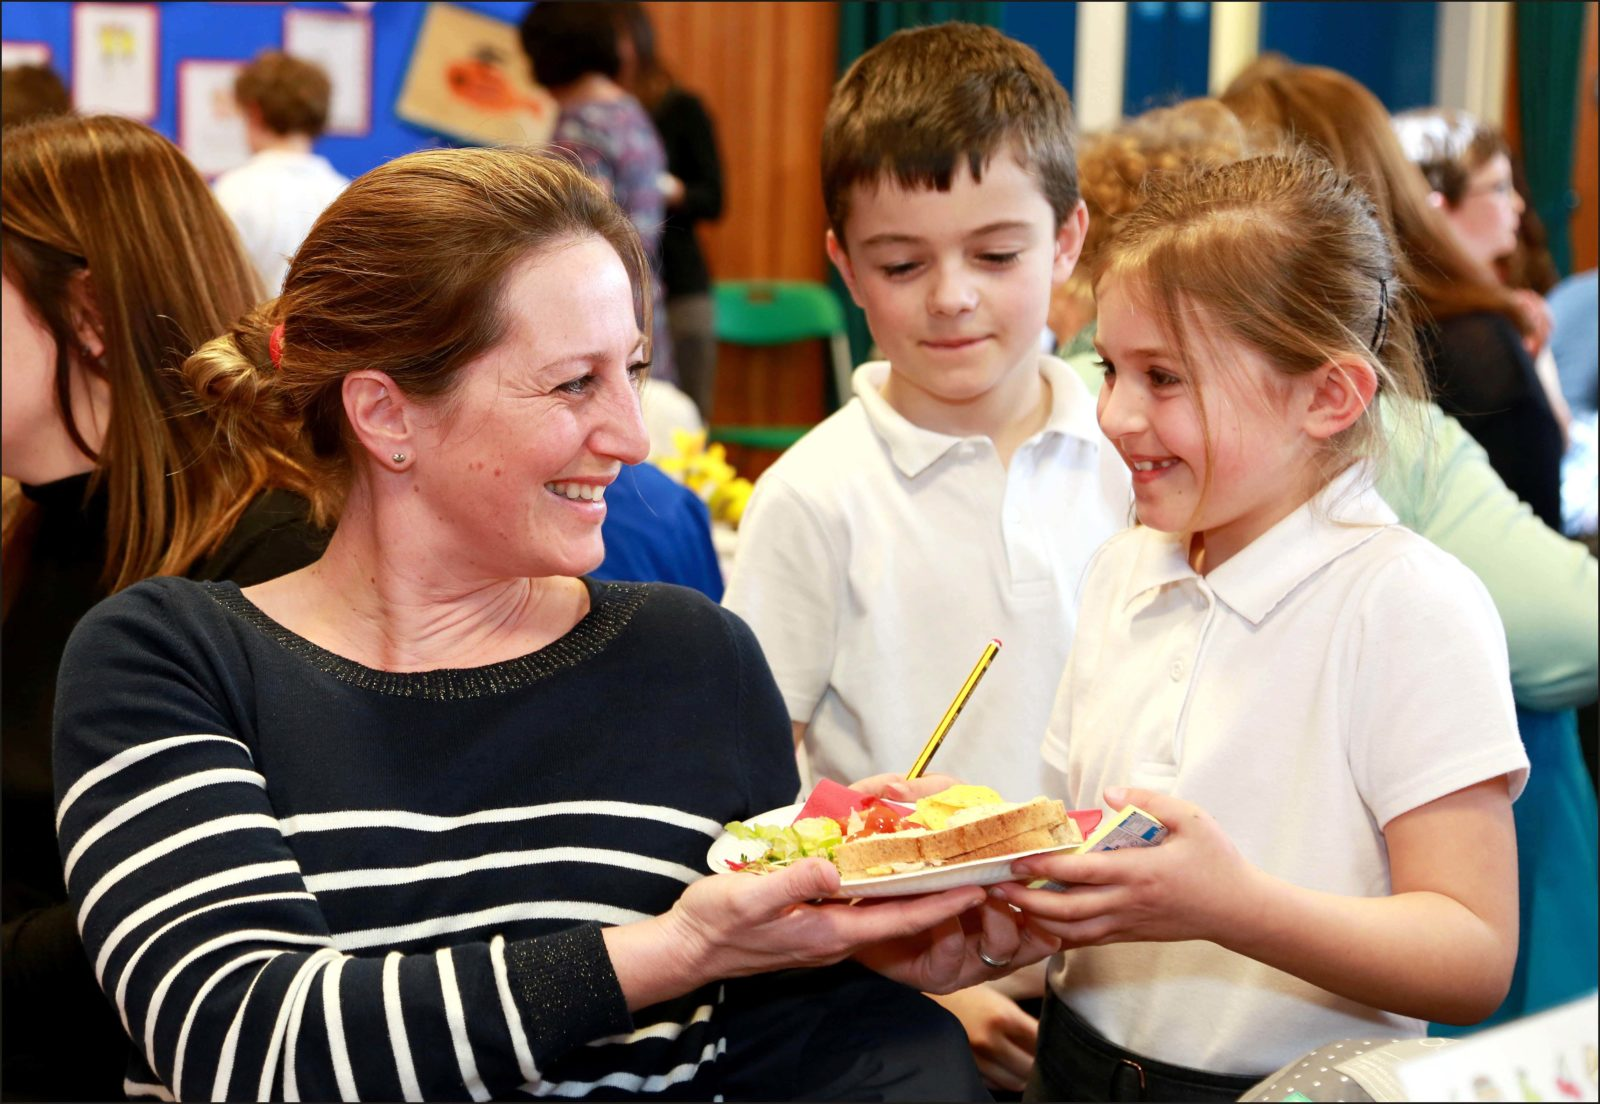 Merley First School pupils gave mums a special treat when they opened a mothers day cafe, making and serving afternoon tea and cakes to their parents.